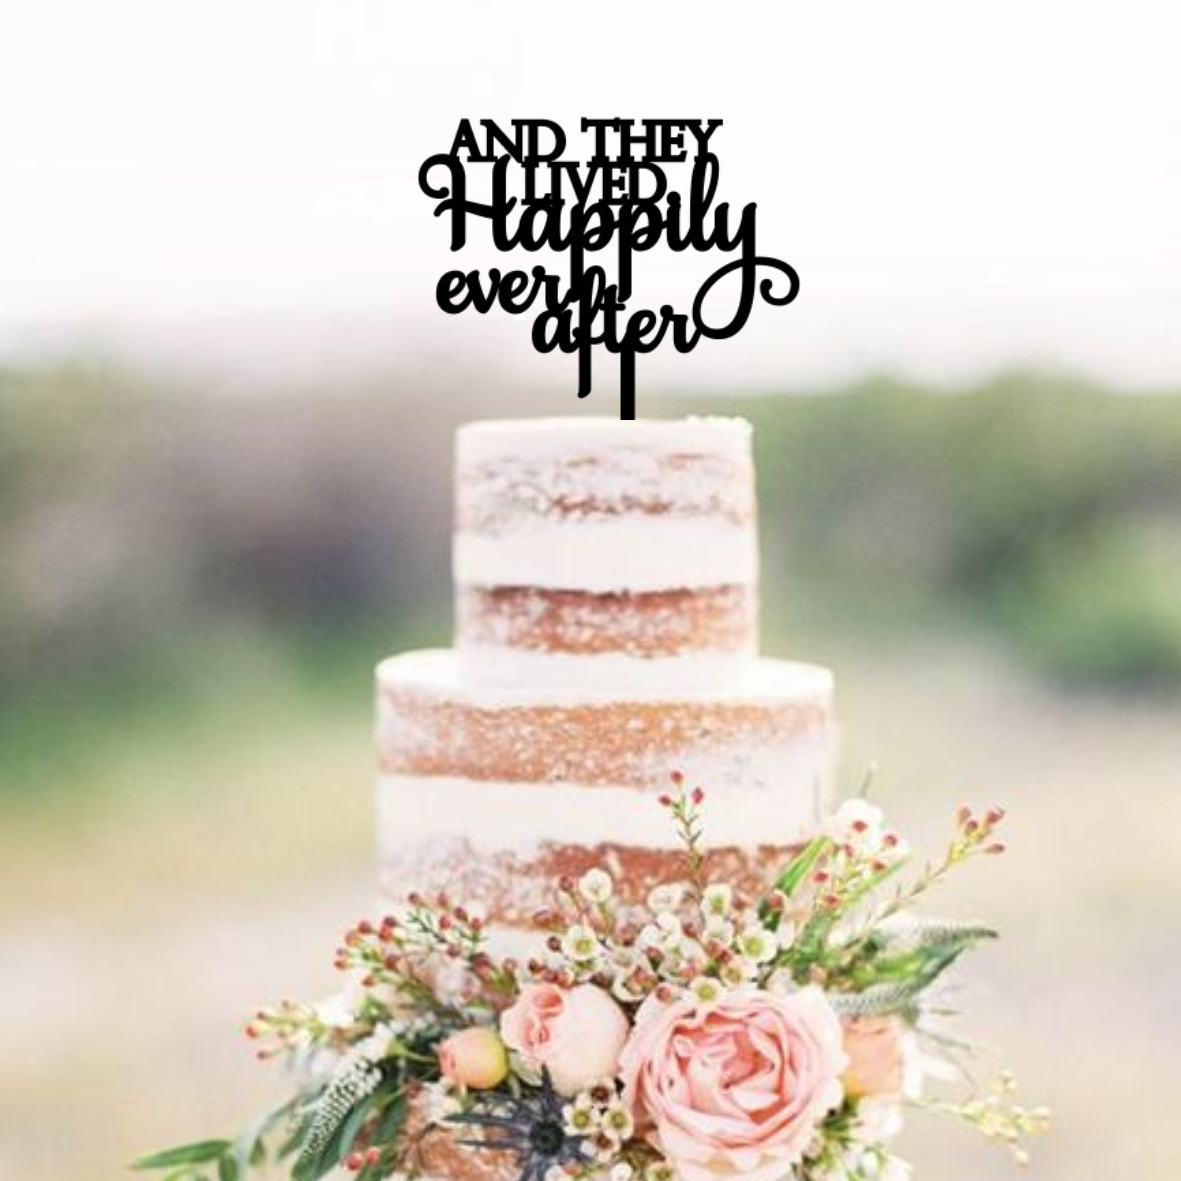 Quick Creations Cake Topper - And They Lived Happily Ever After